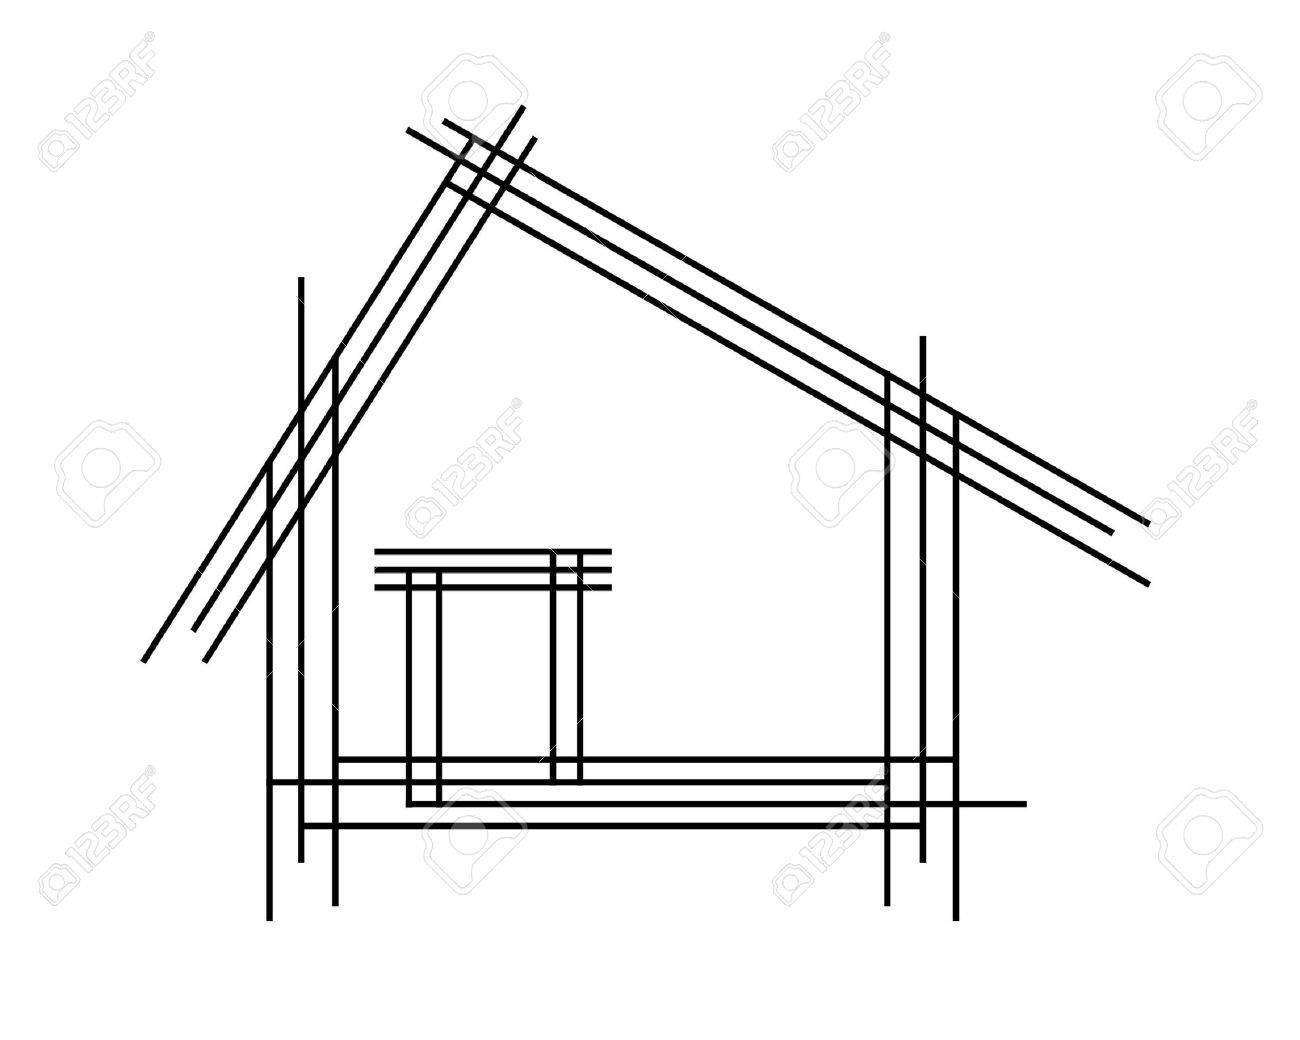 Schematic Drawing Of The House As A Logo